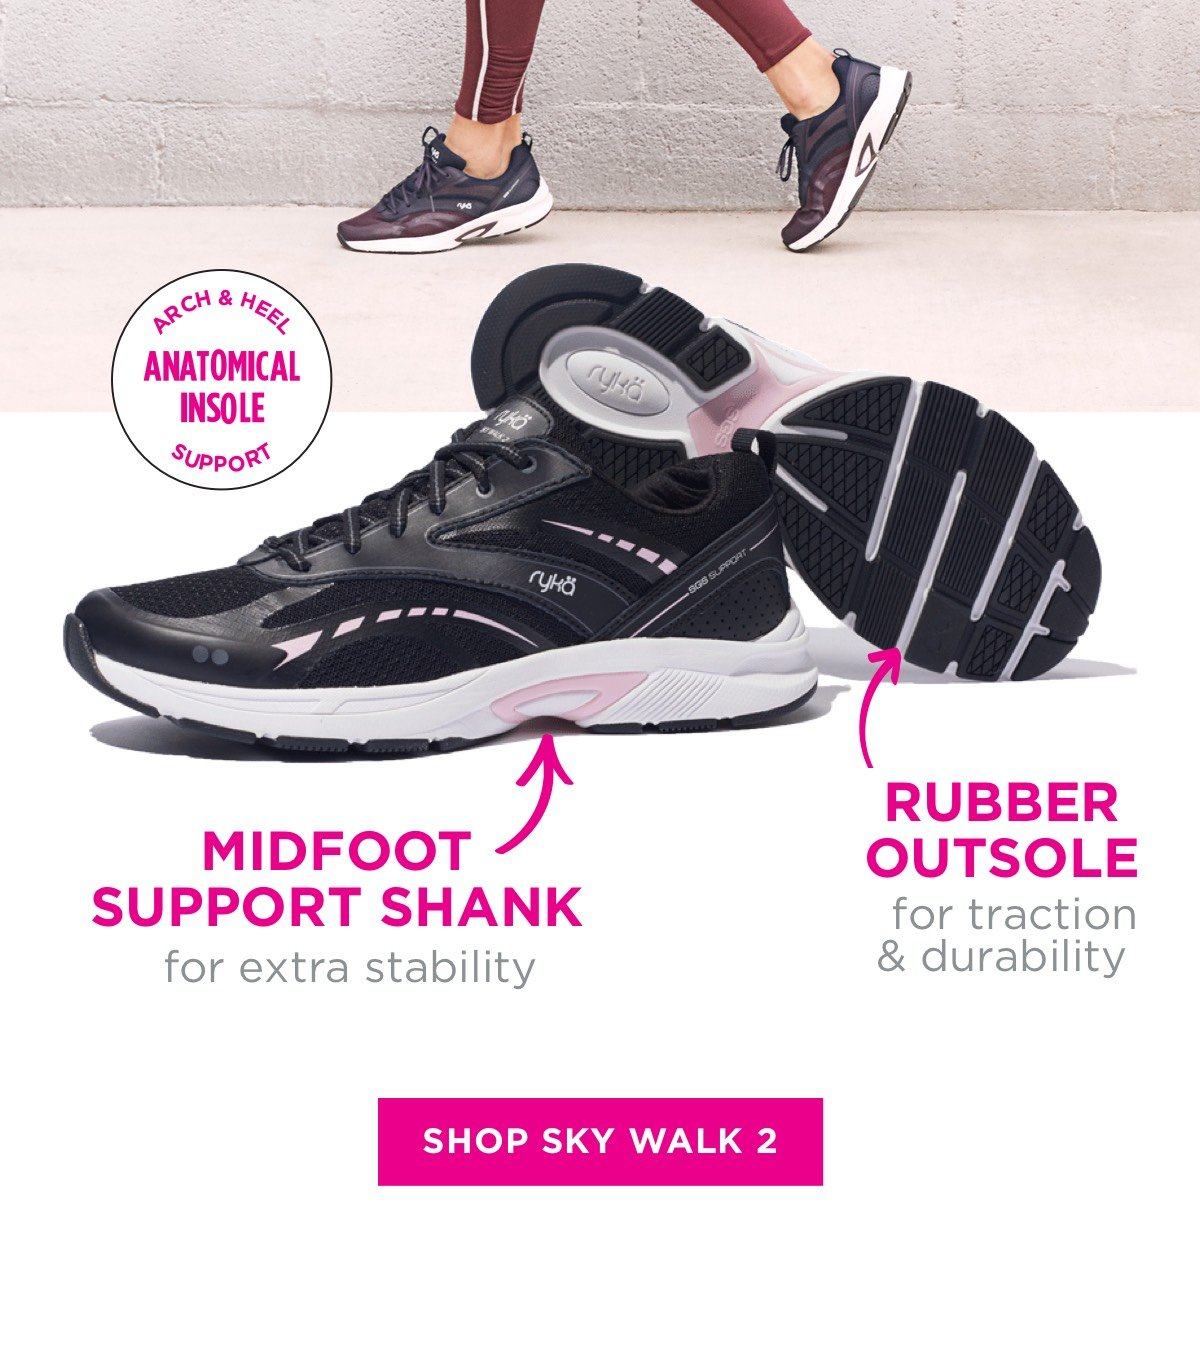 Rubber outsole and midfoot support shank. SHOP SKY WALK 2